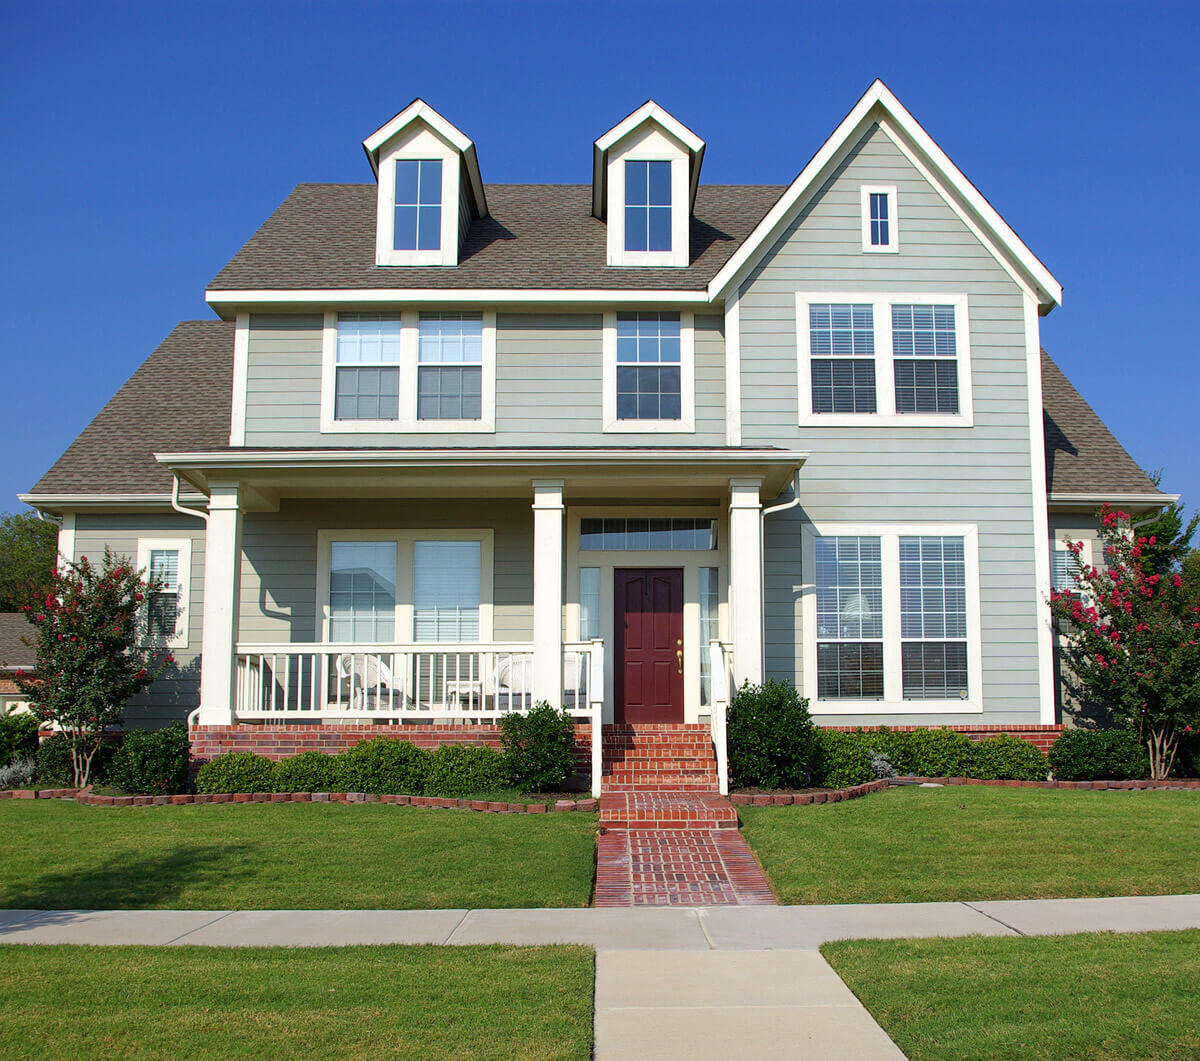 Townhomes near me for rent